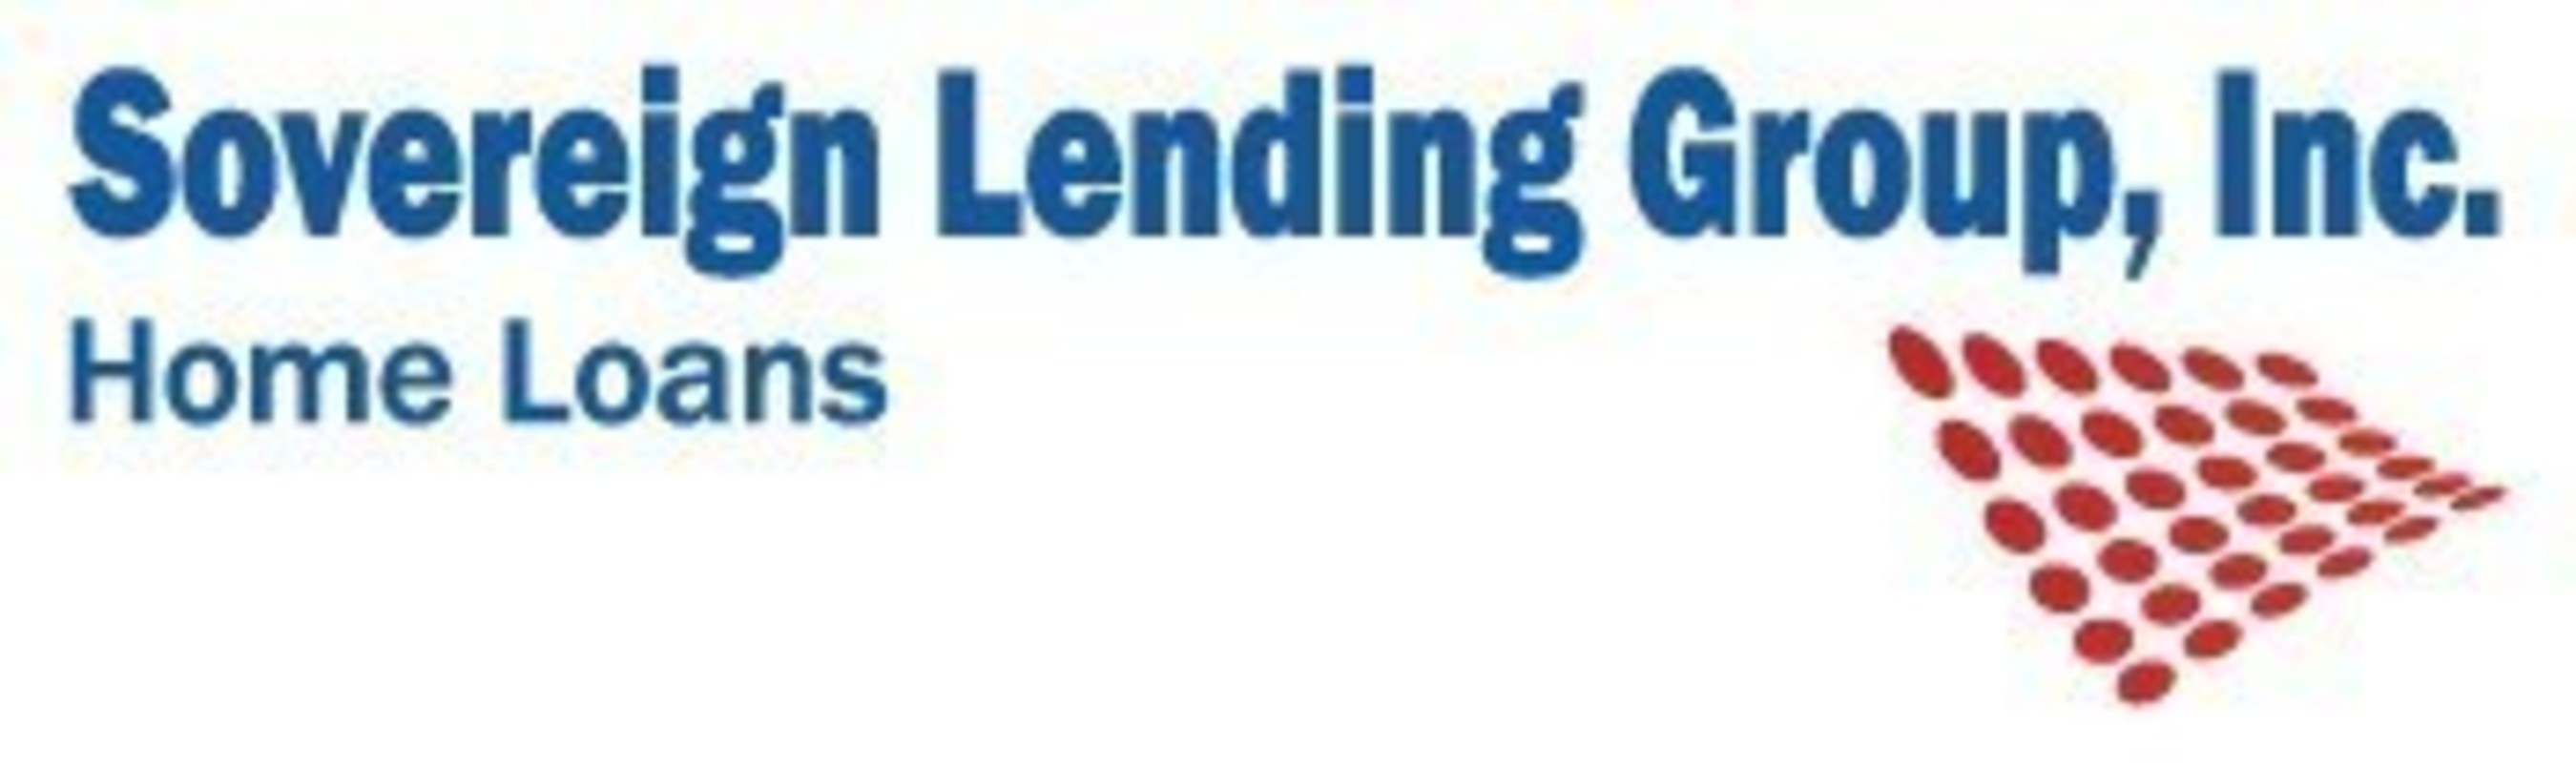 Sovereign Lending Group, Incorporated Selected For 'The Fastest Growing Private Companies in America' for 2015